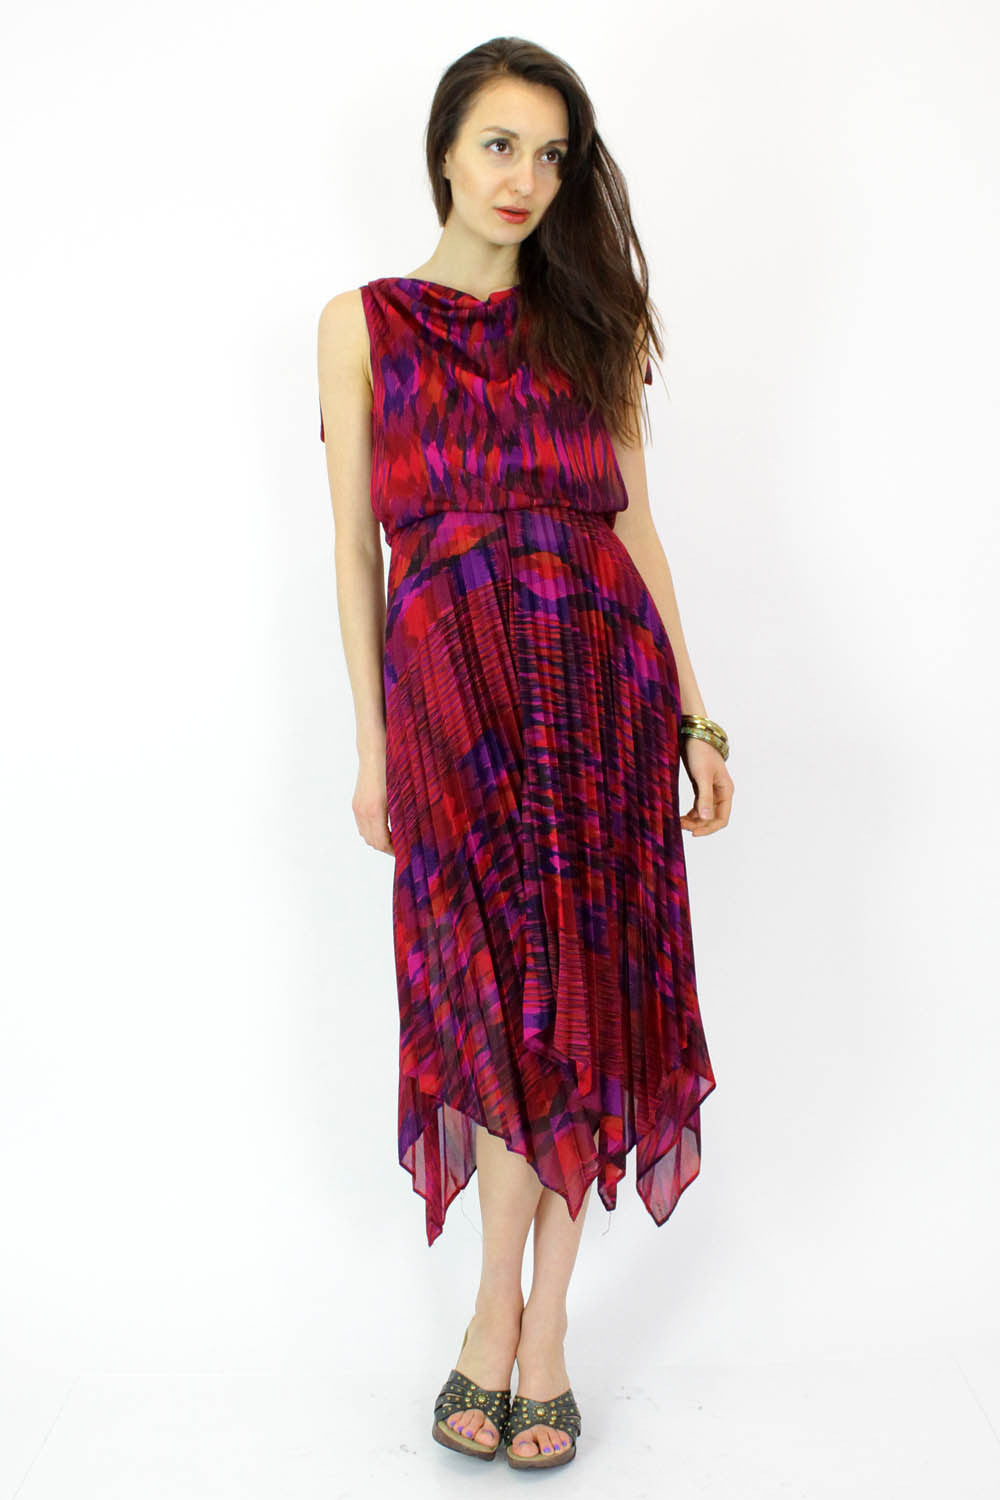 70s Jeweled Space Dye Dress S/M